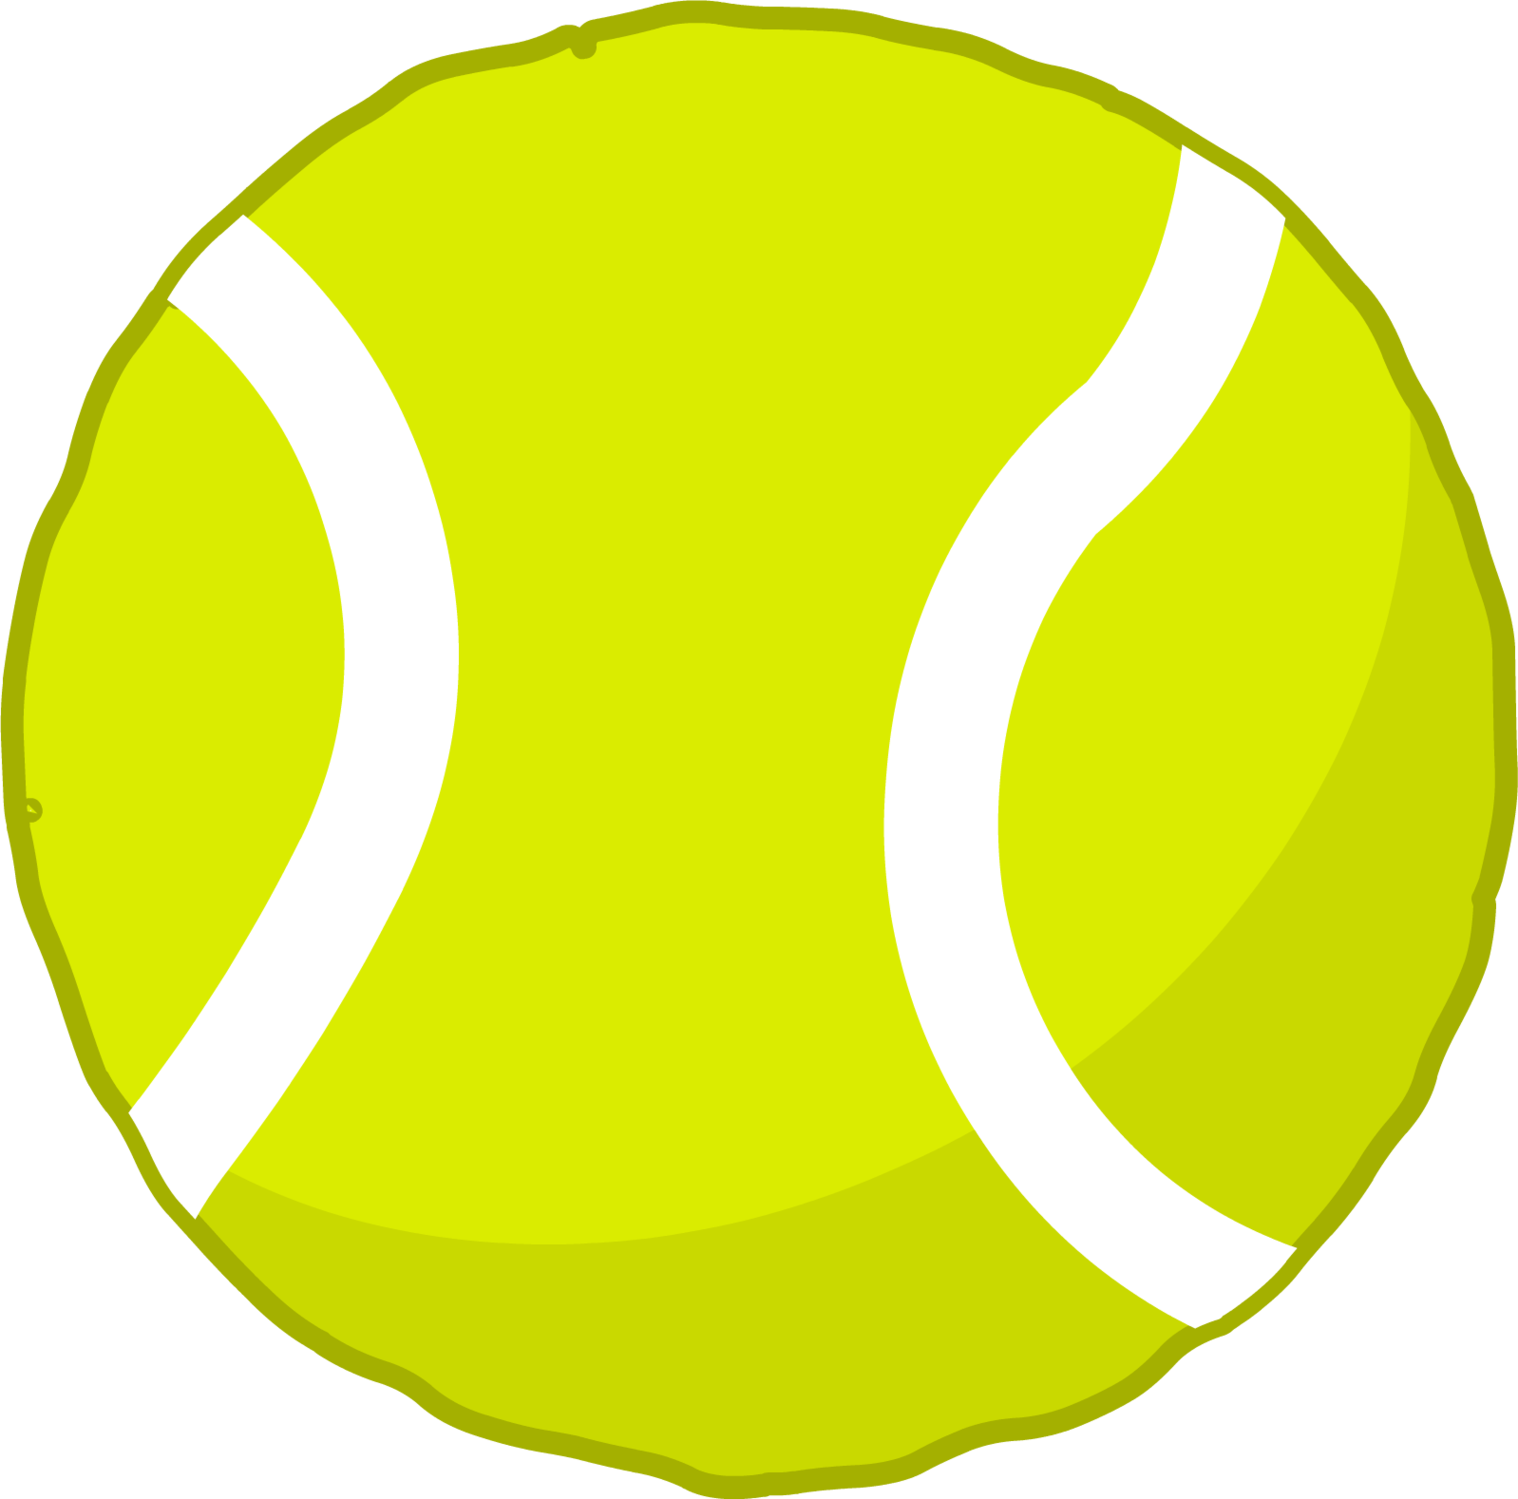 Picture of tennis ball clipart free to use clip art resource